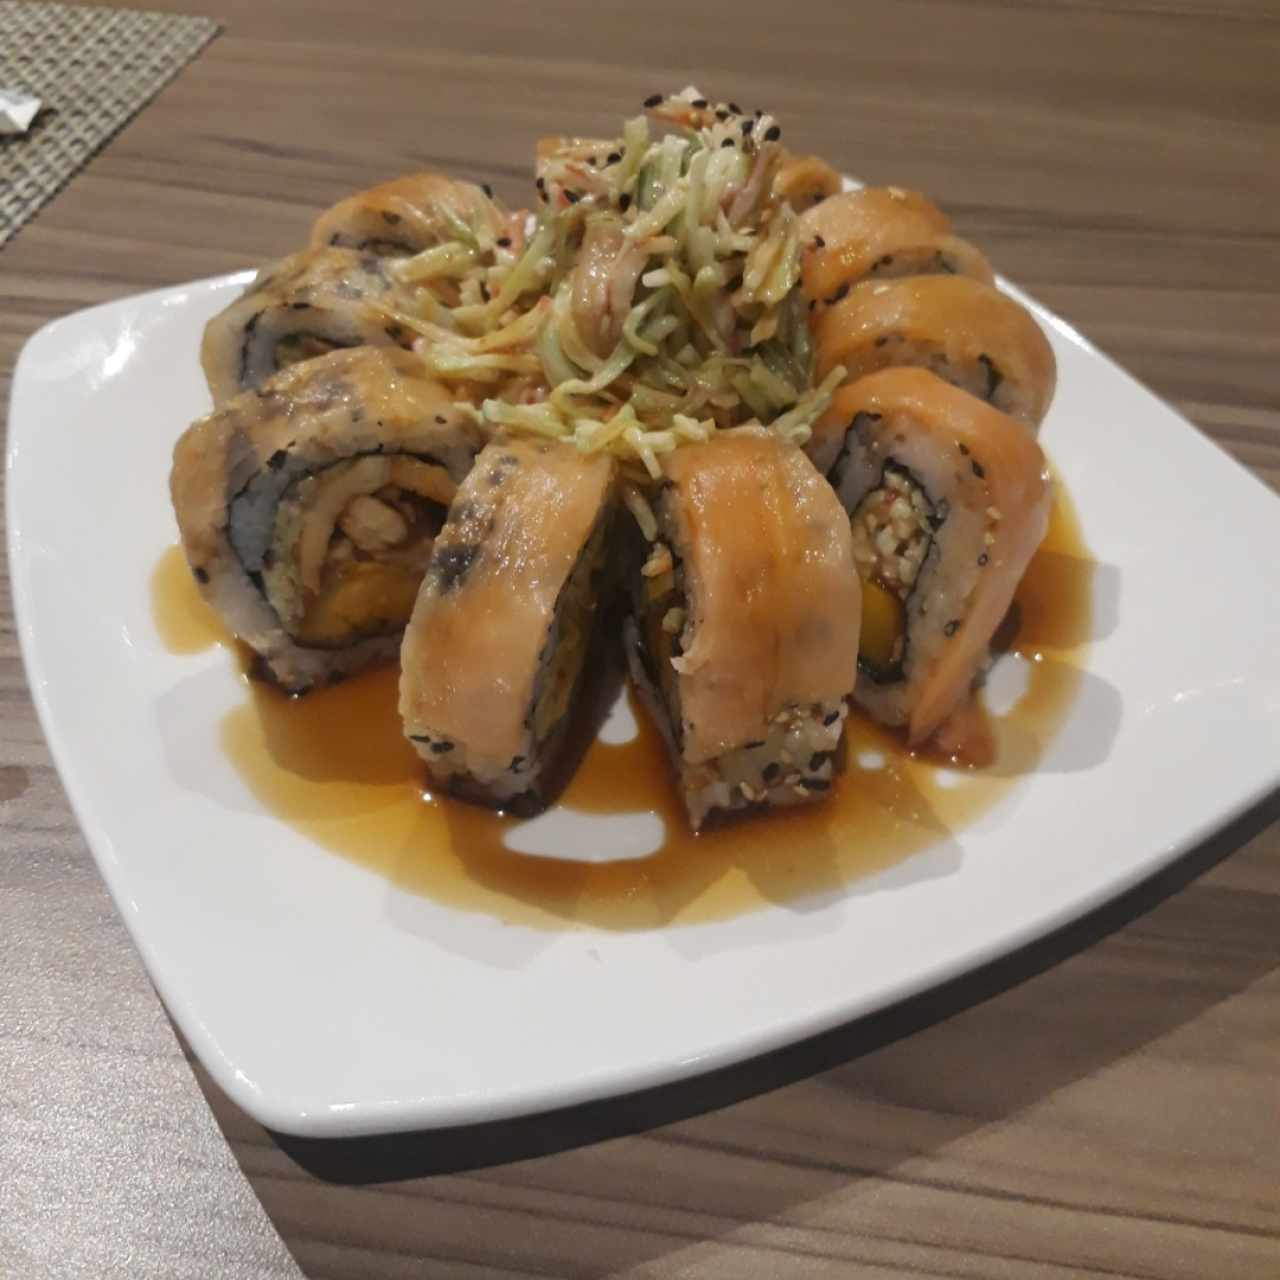 chicken and fish roll